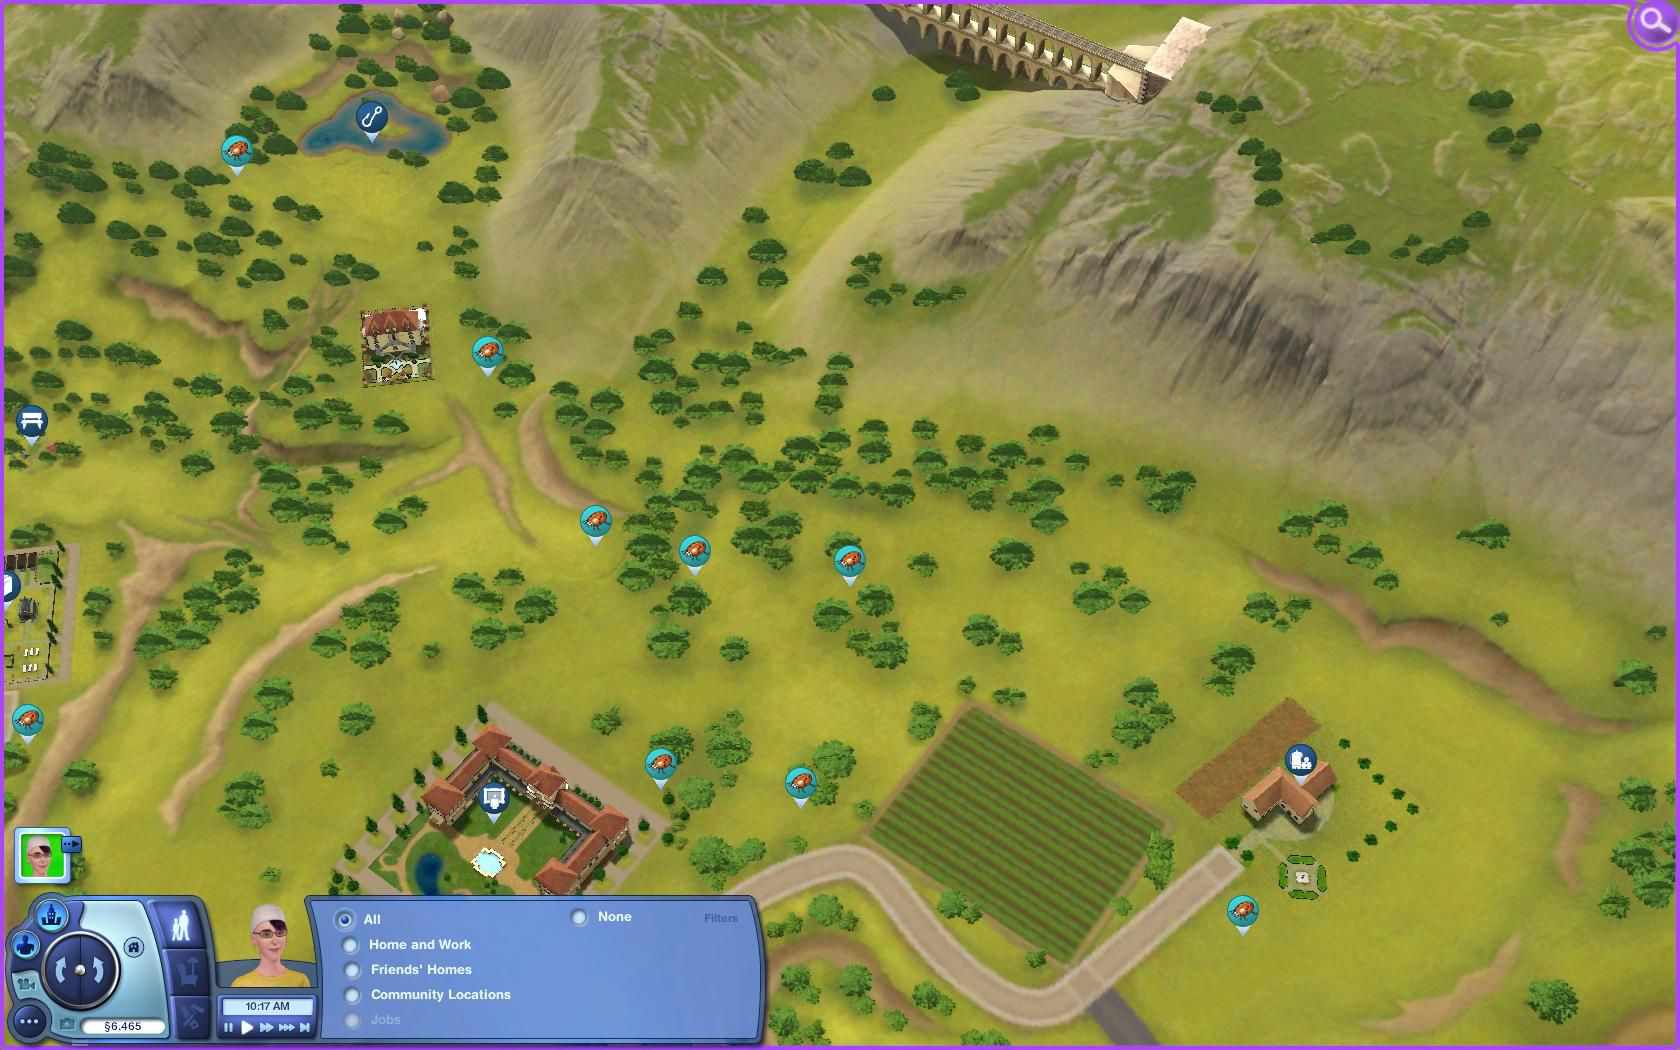 The sims 3 world adventures collecting guide maps sims 3 world adventures maps france insects gumiabroncs Gallery